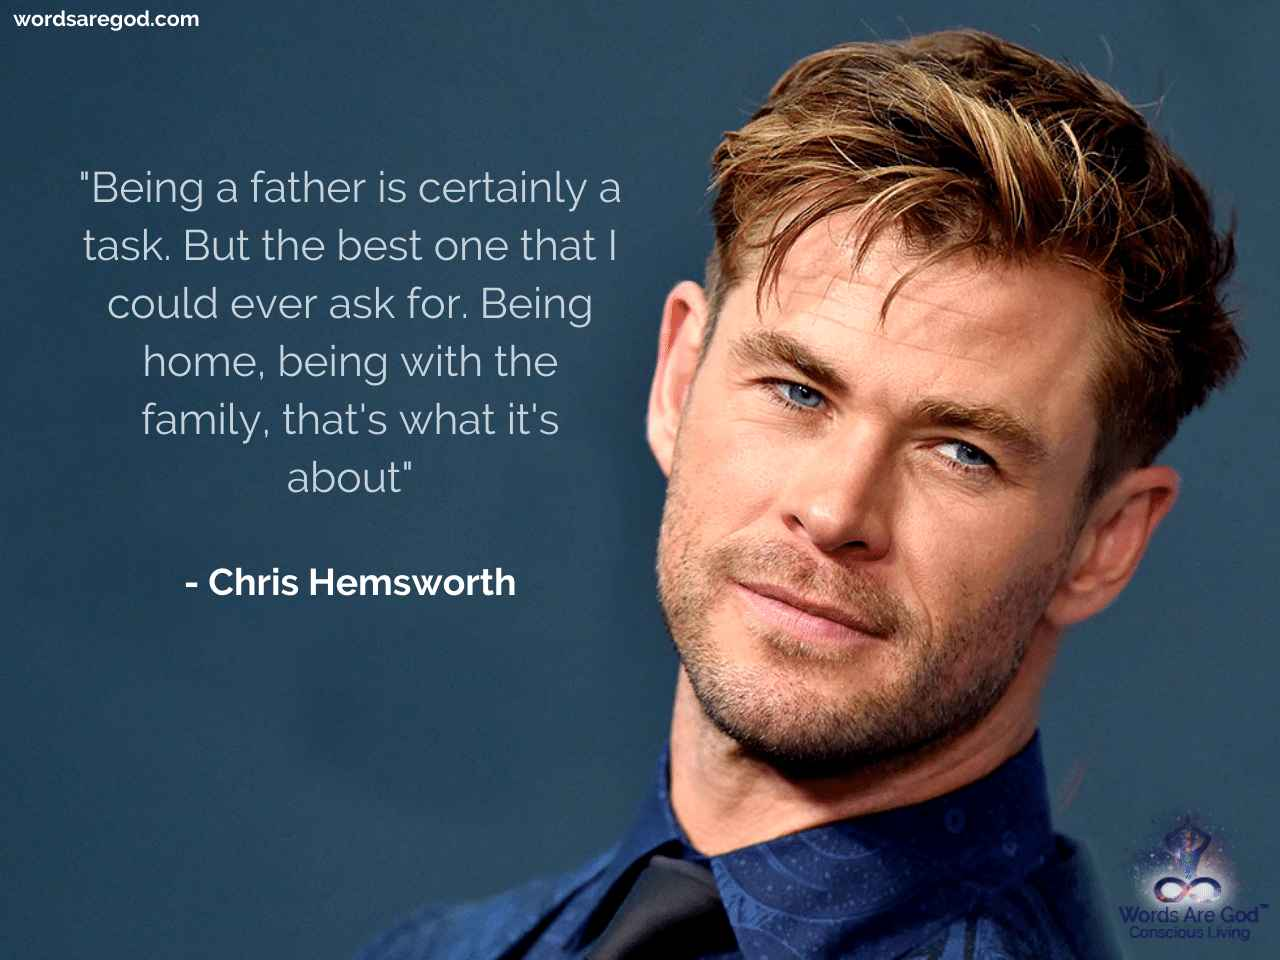 Chris Hemsworth Motivational Quotes by Chris Hemsworth